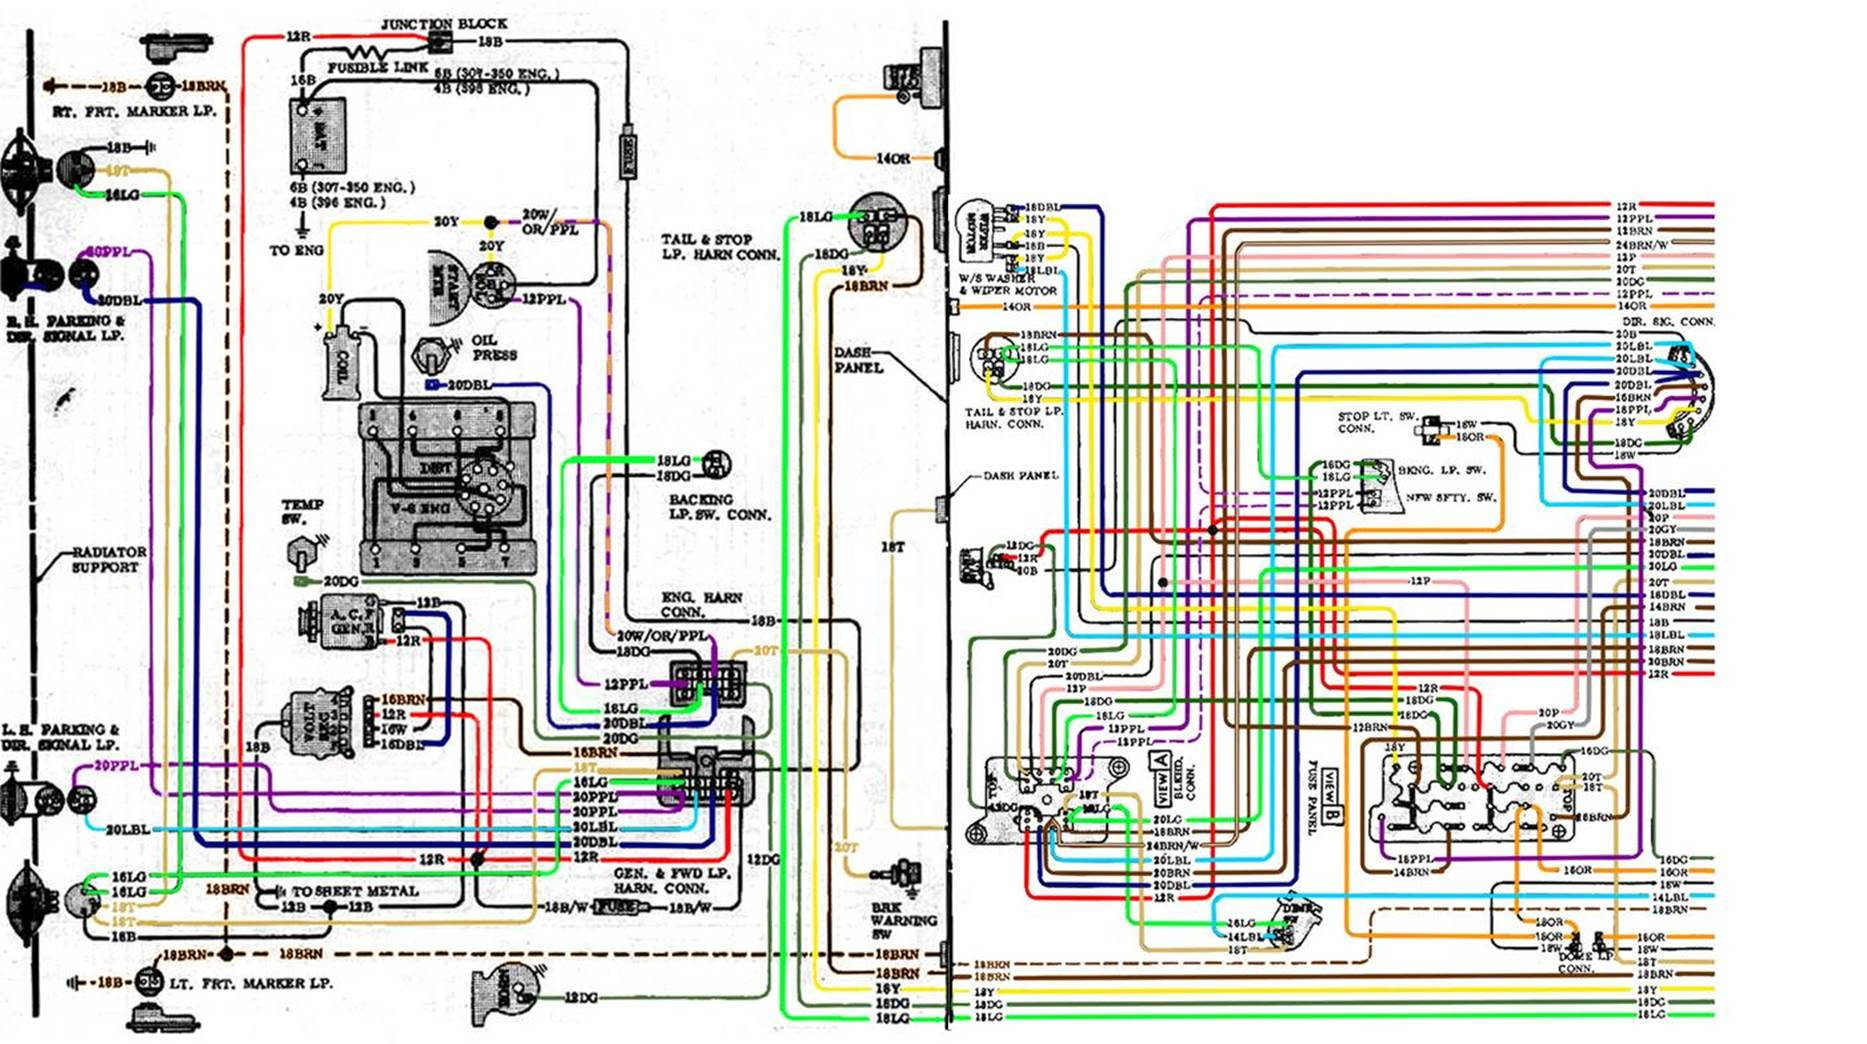 image002 78 chevy truck wiring diagram 86 chevy wiring diagram \u2022 free 1966 GTO Engine at mifinder.co